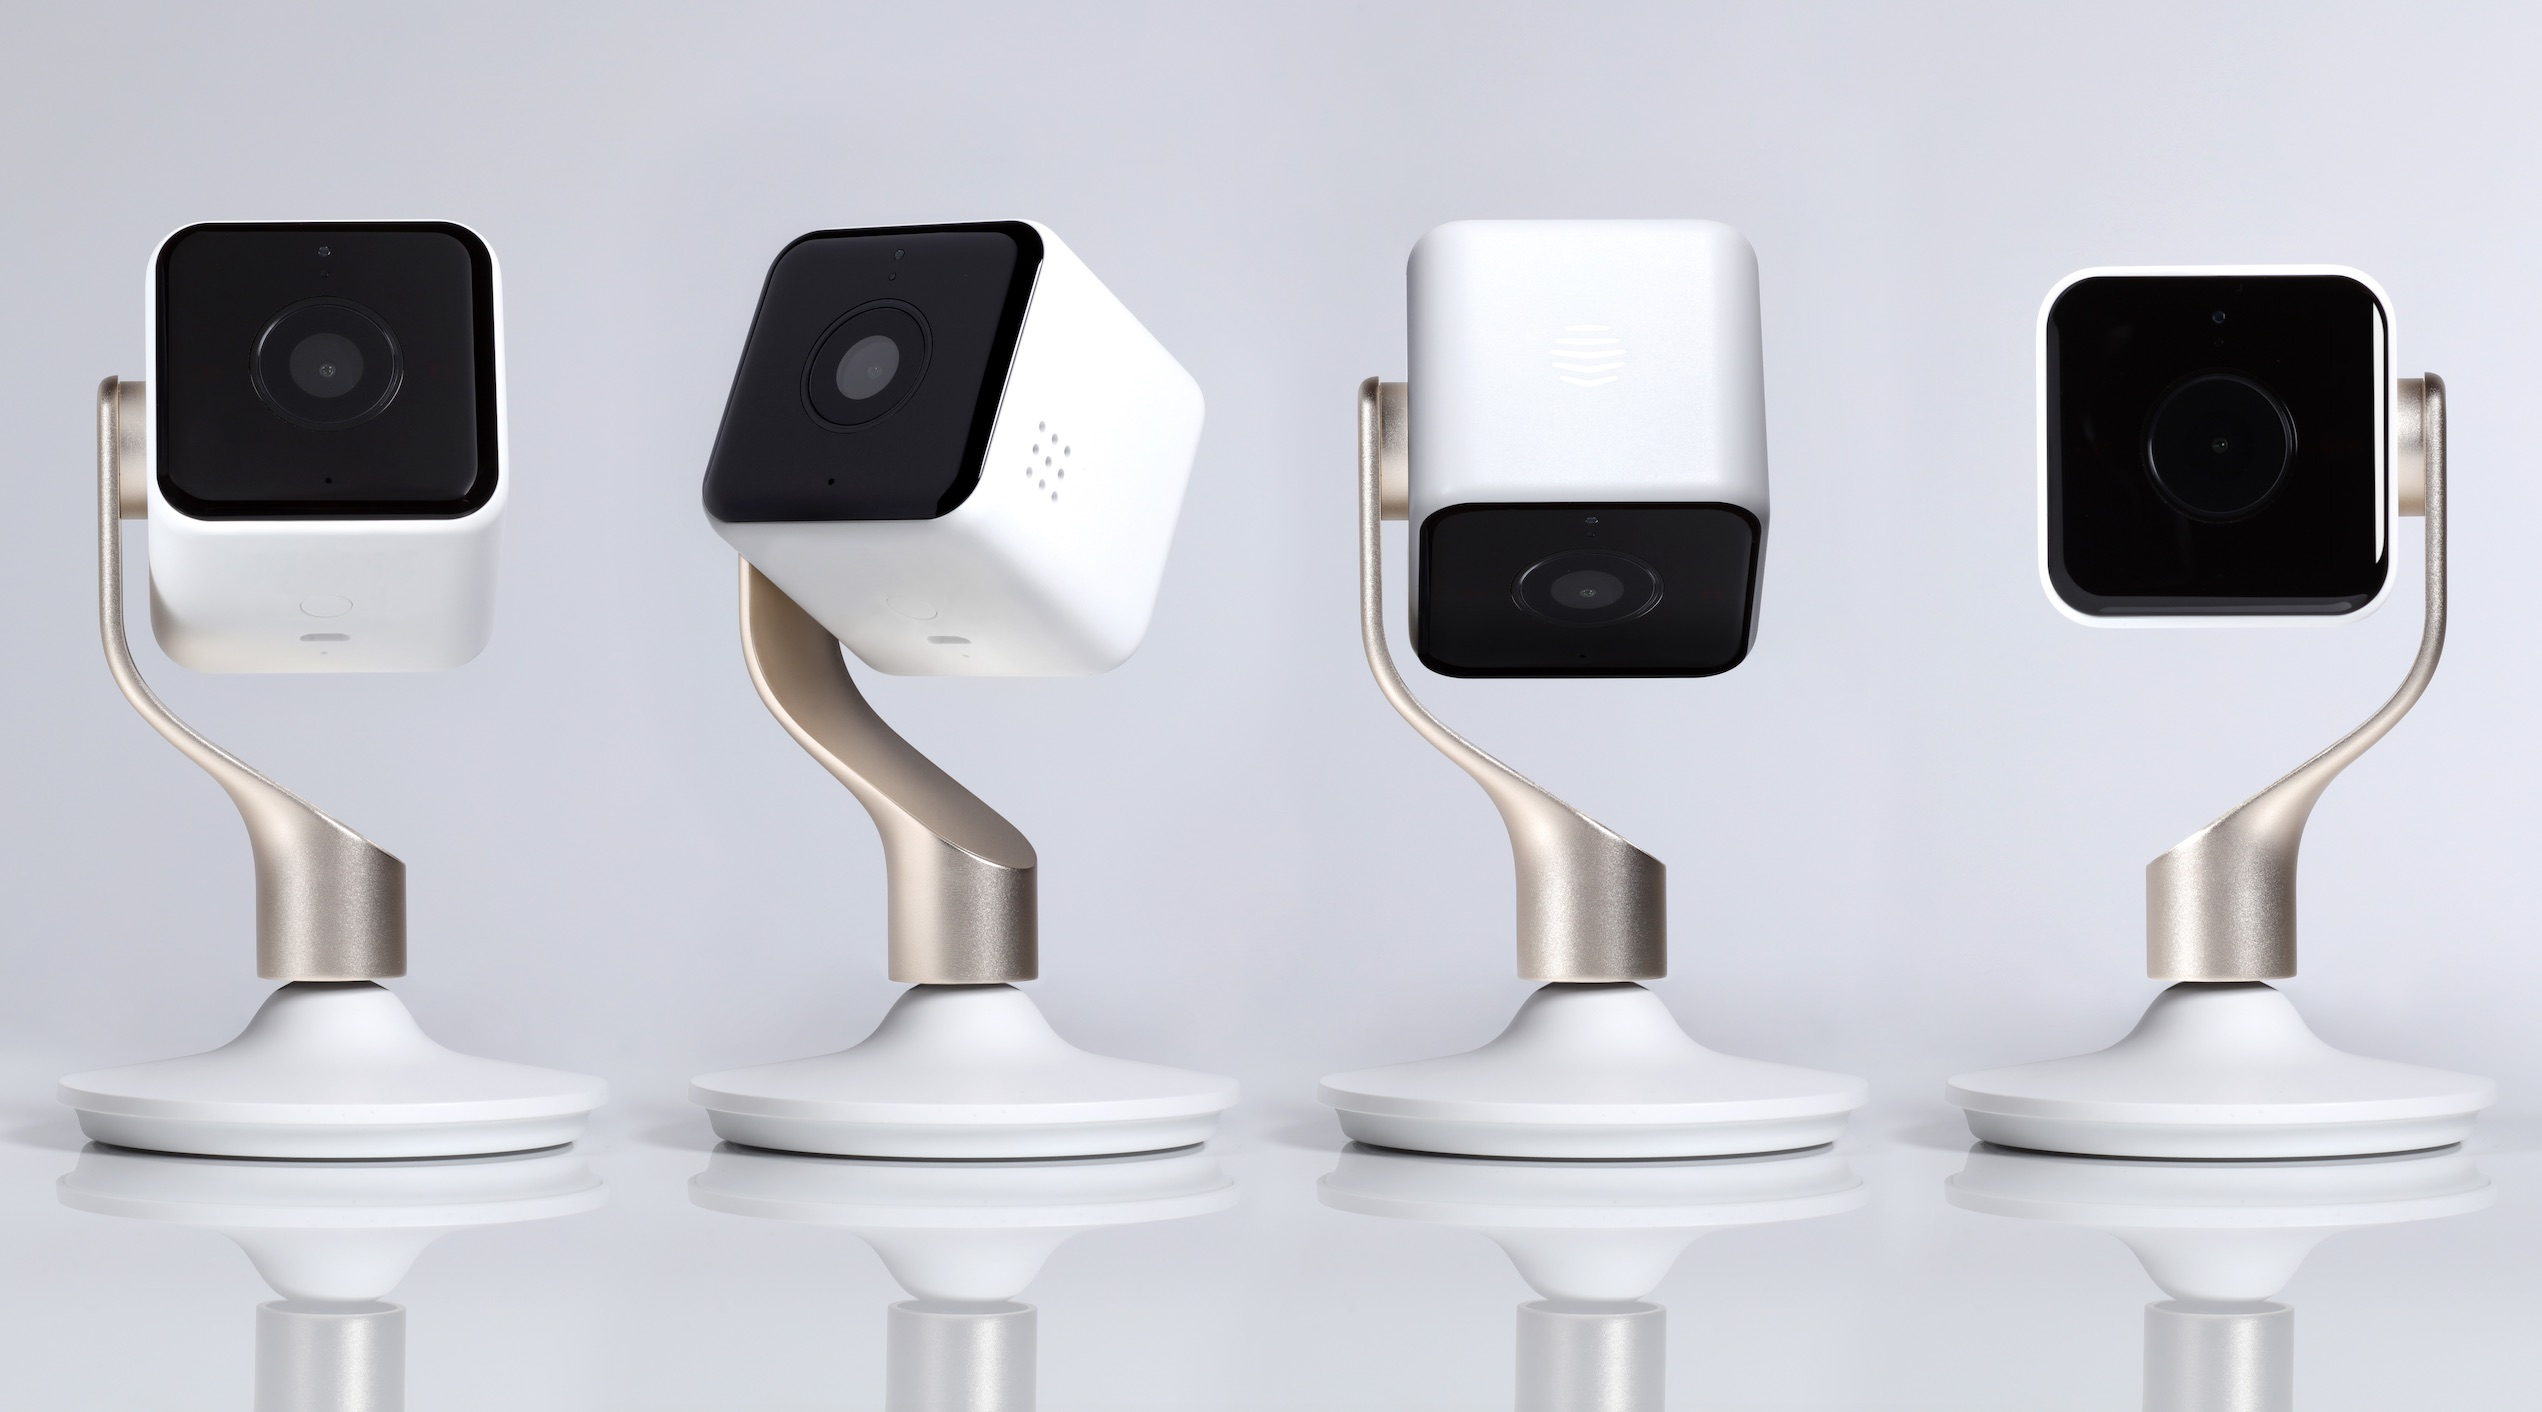 Keep An Eye On Your Home S Interior With The Mobile Hive View